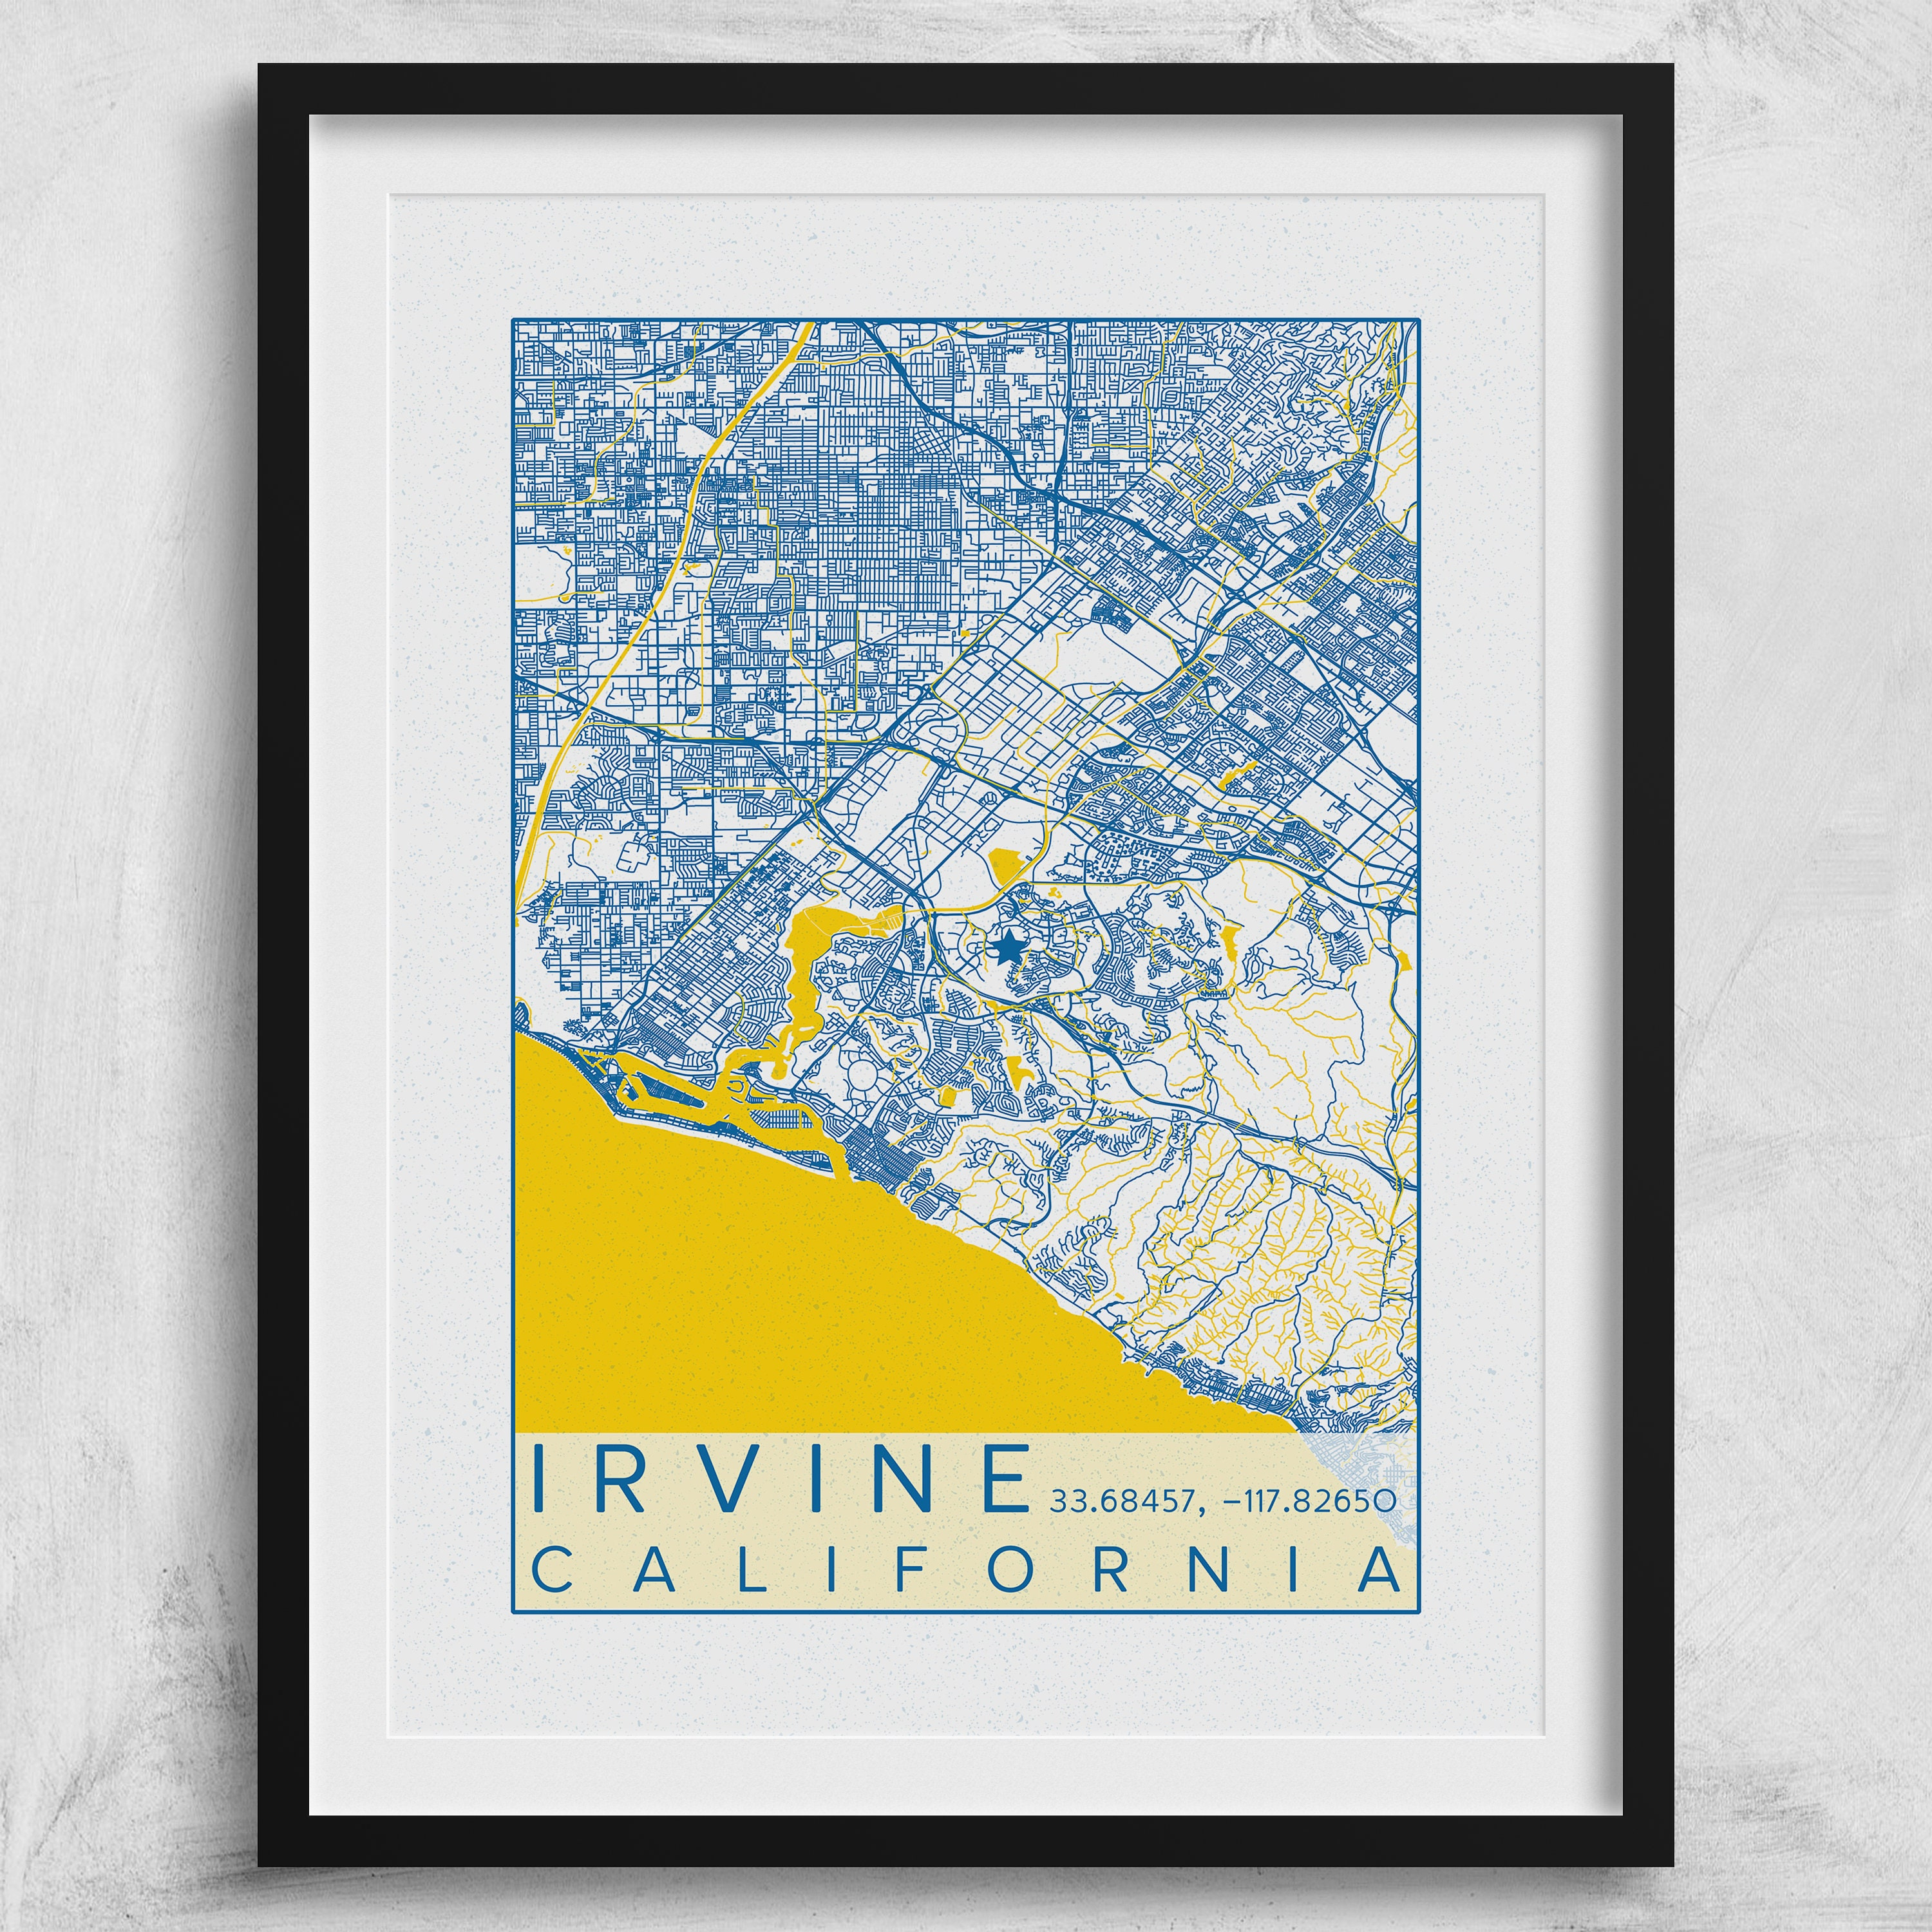 Where Is Irvine California On California Map.Irvine Ca Map Uc Irvine Poster Print City Map California Anteaters